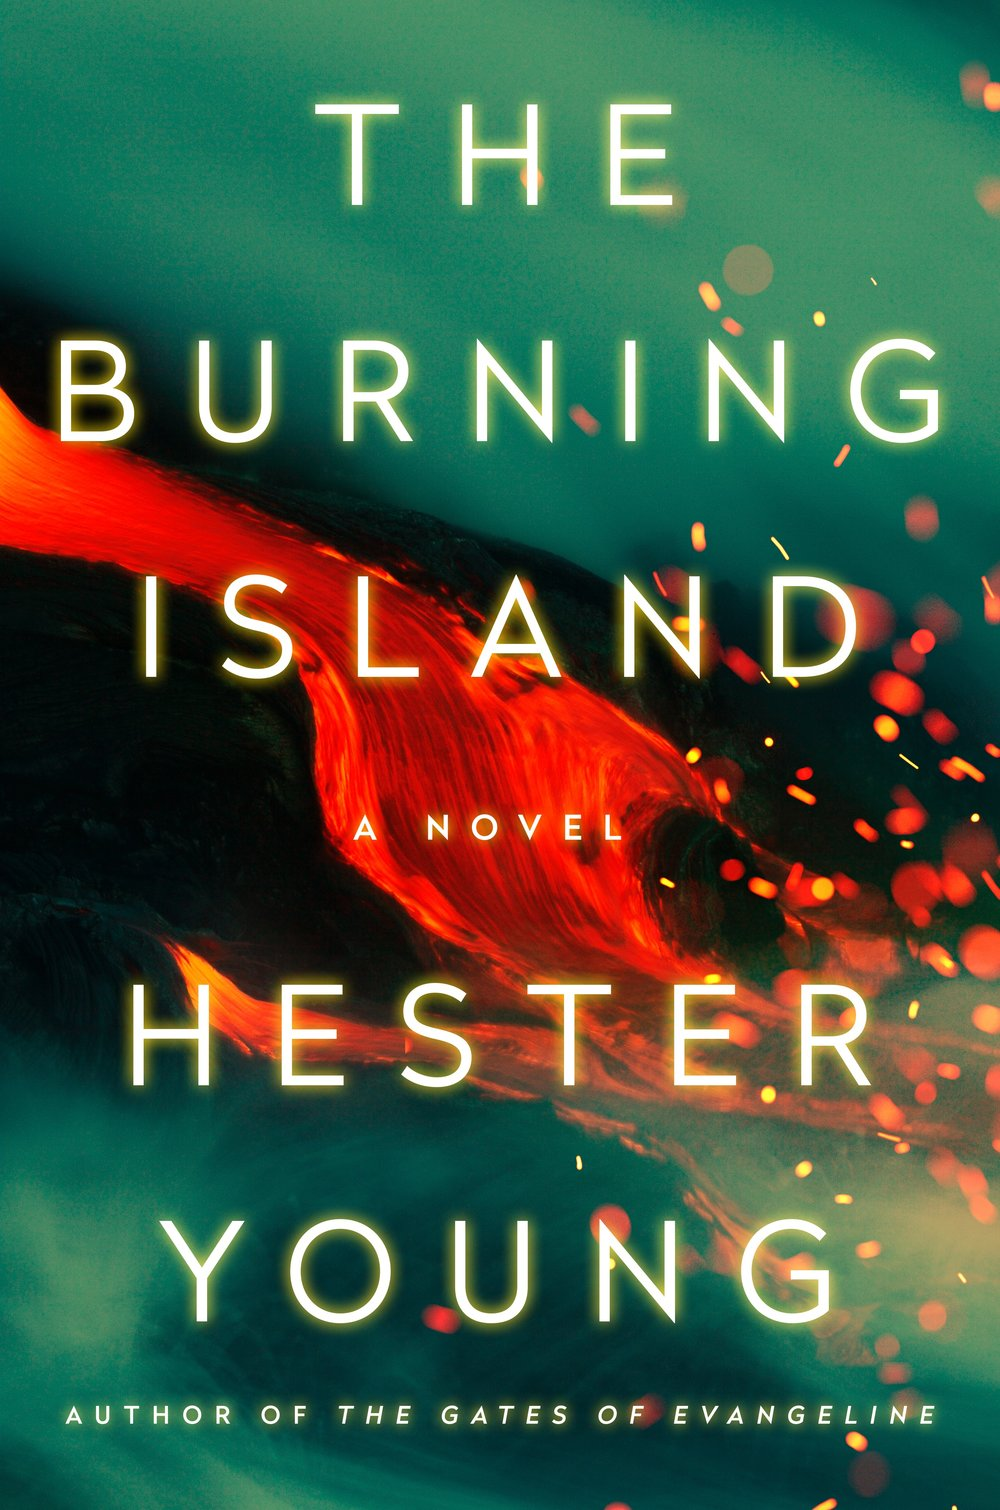 BurningIslandCover.jpg